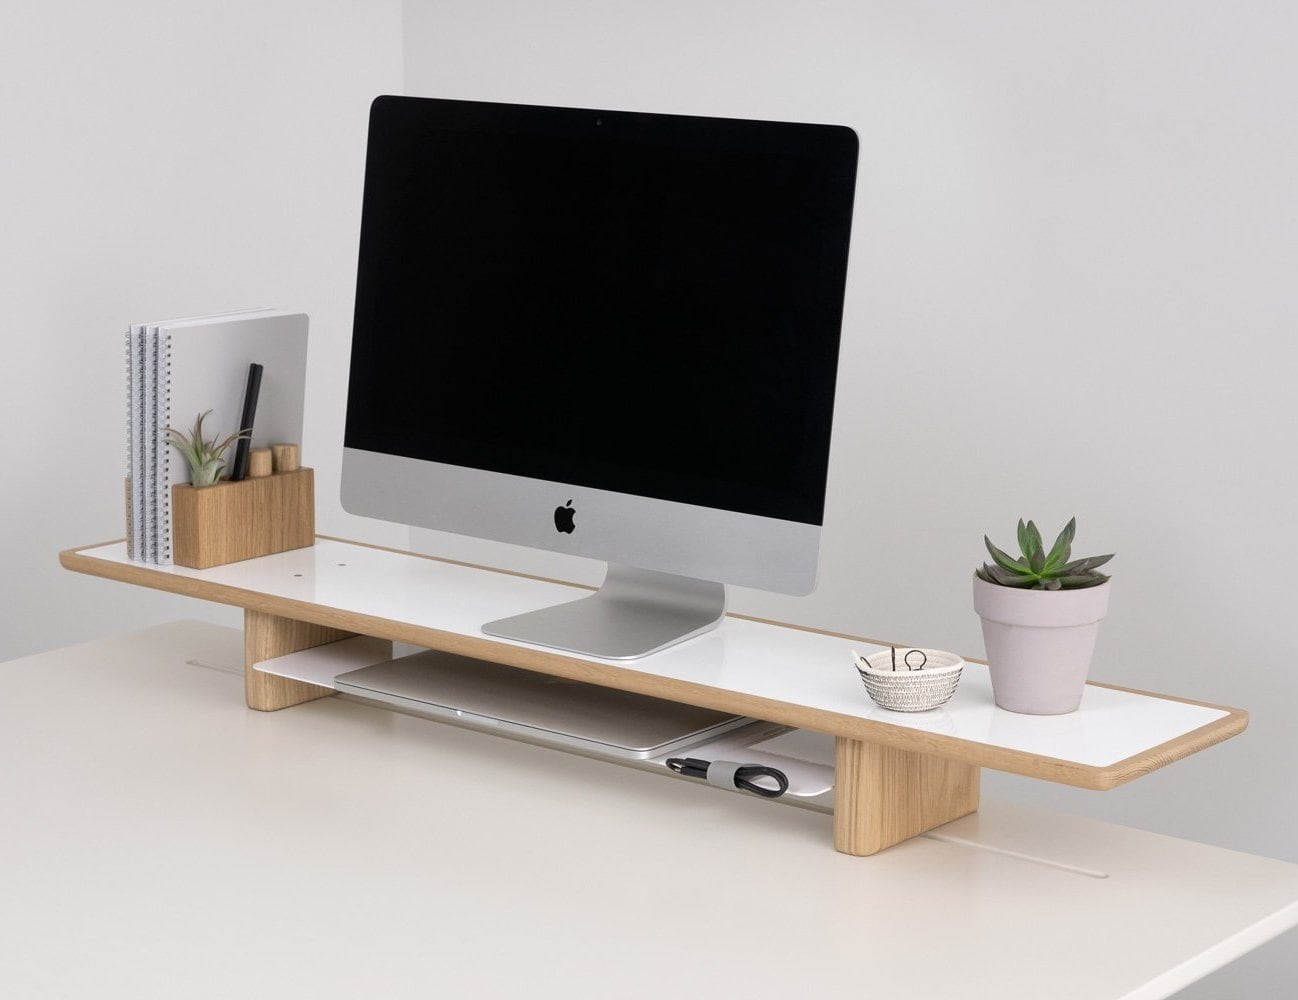 Artifox Lift Multi-Level Desk Storage gives you more space to work